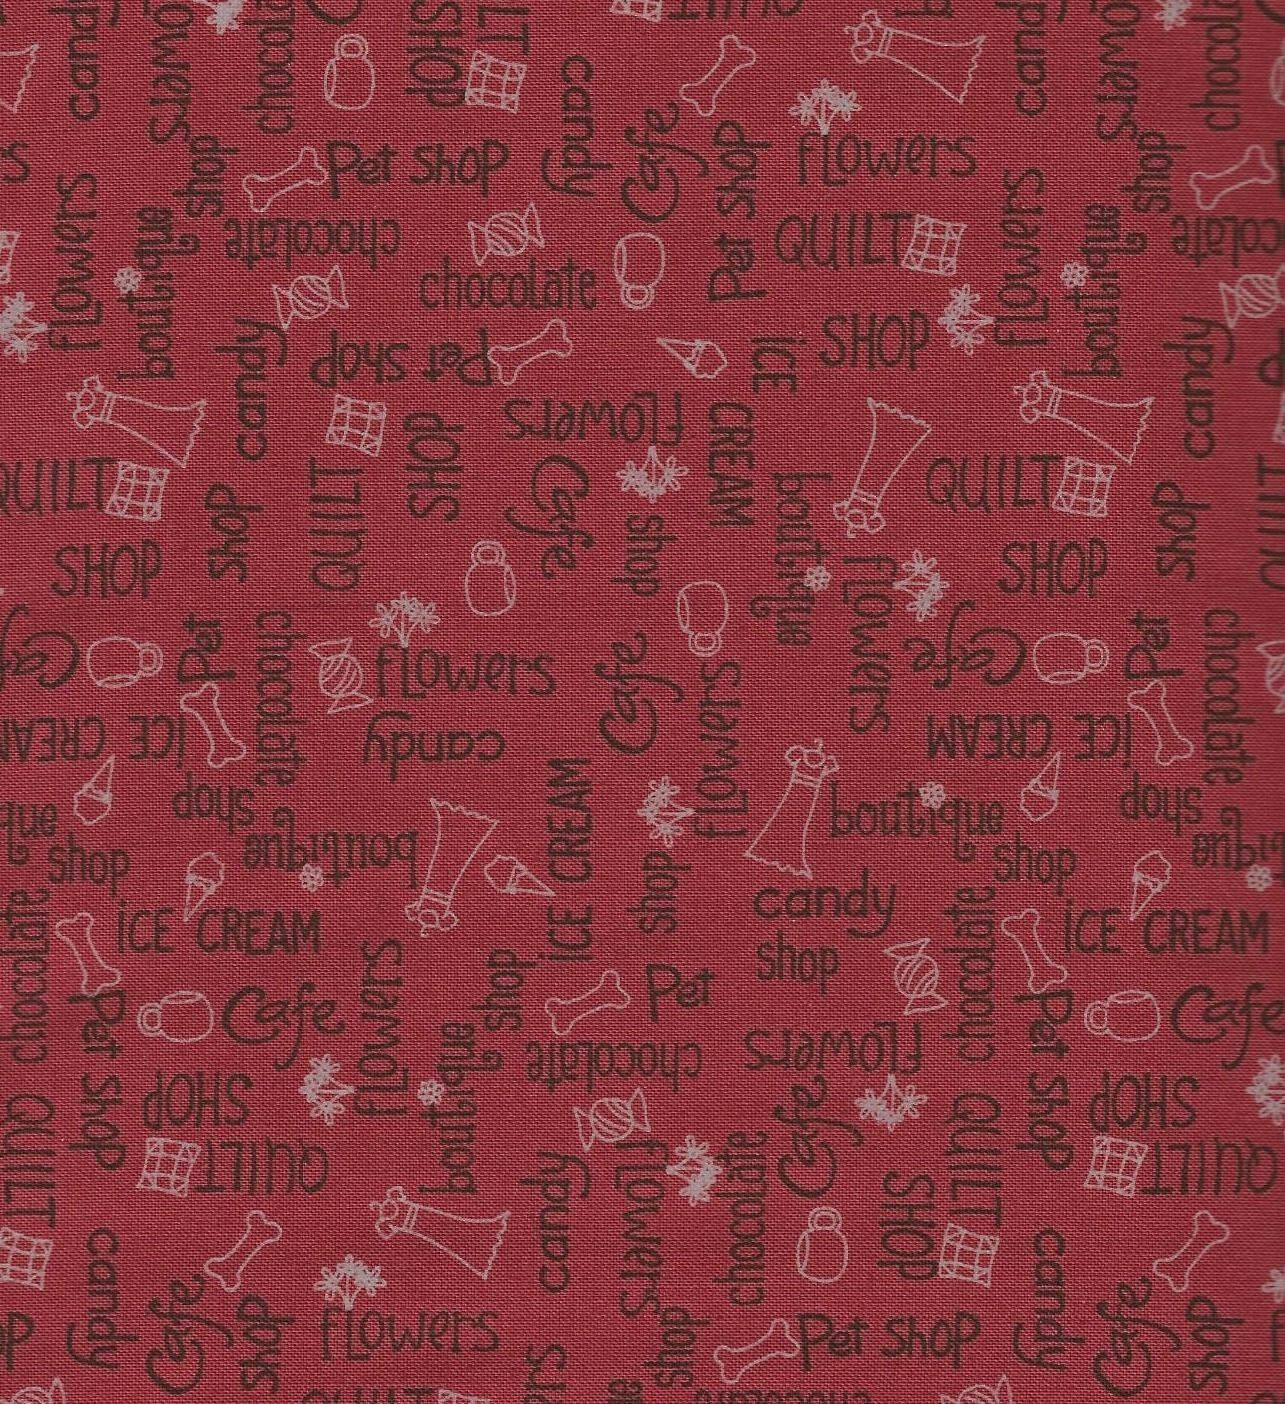 AROUND TOWN 24098 by Whimsicals of Red Rooster 1//2 YARD